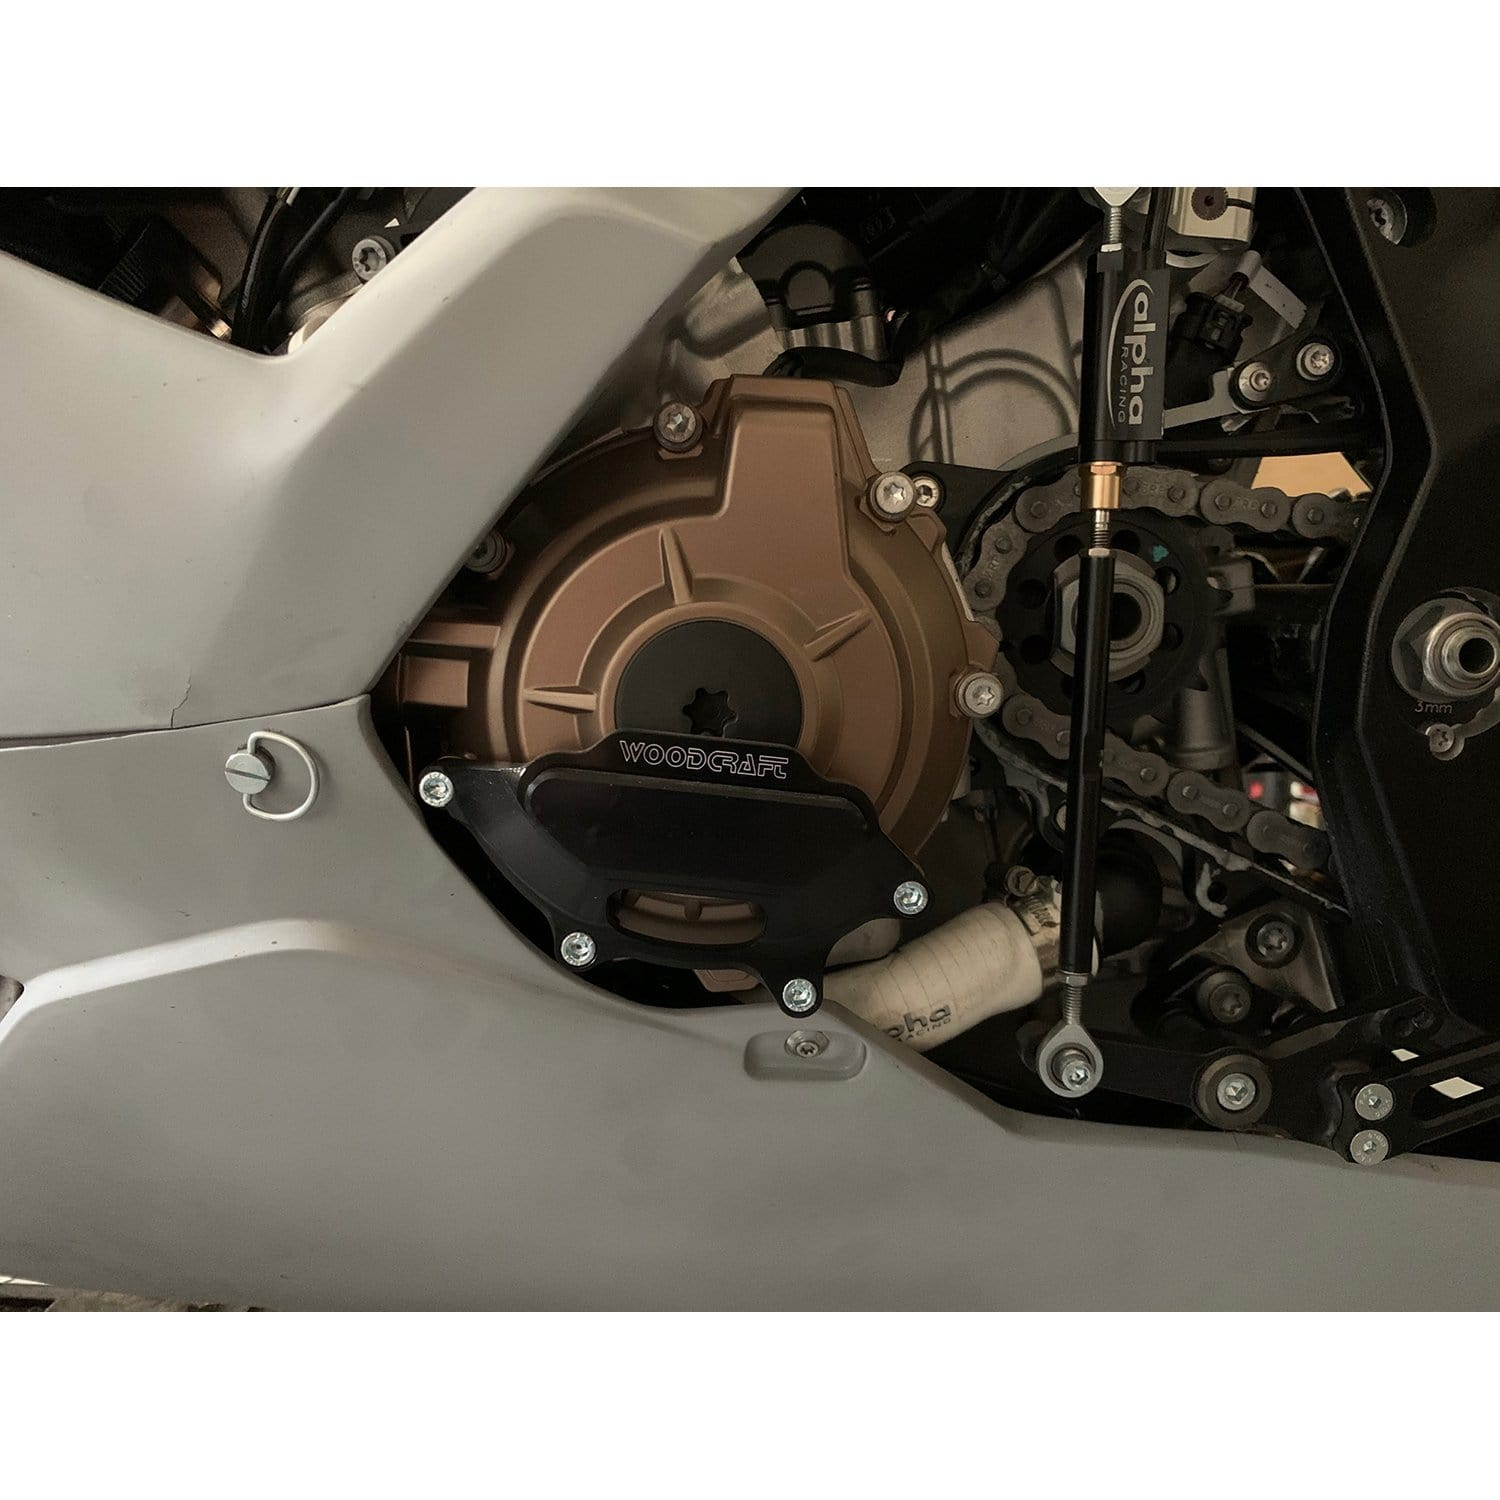 2020 BMW S1000RR Stator Cover Protector